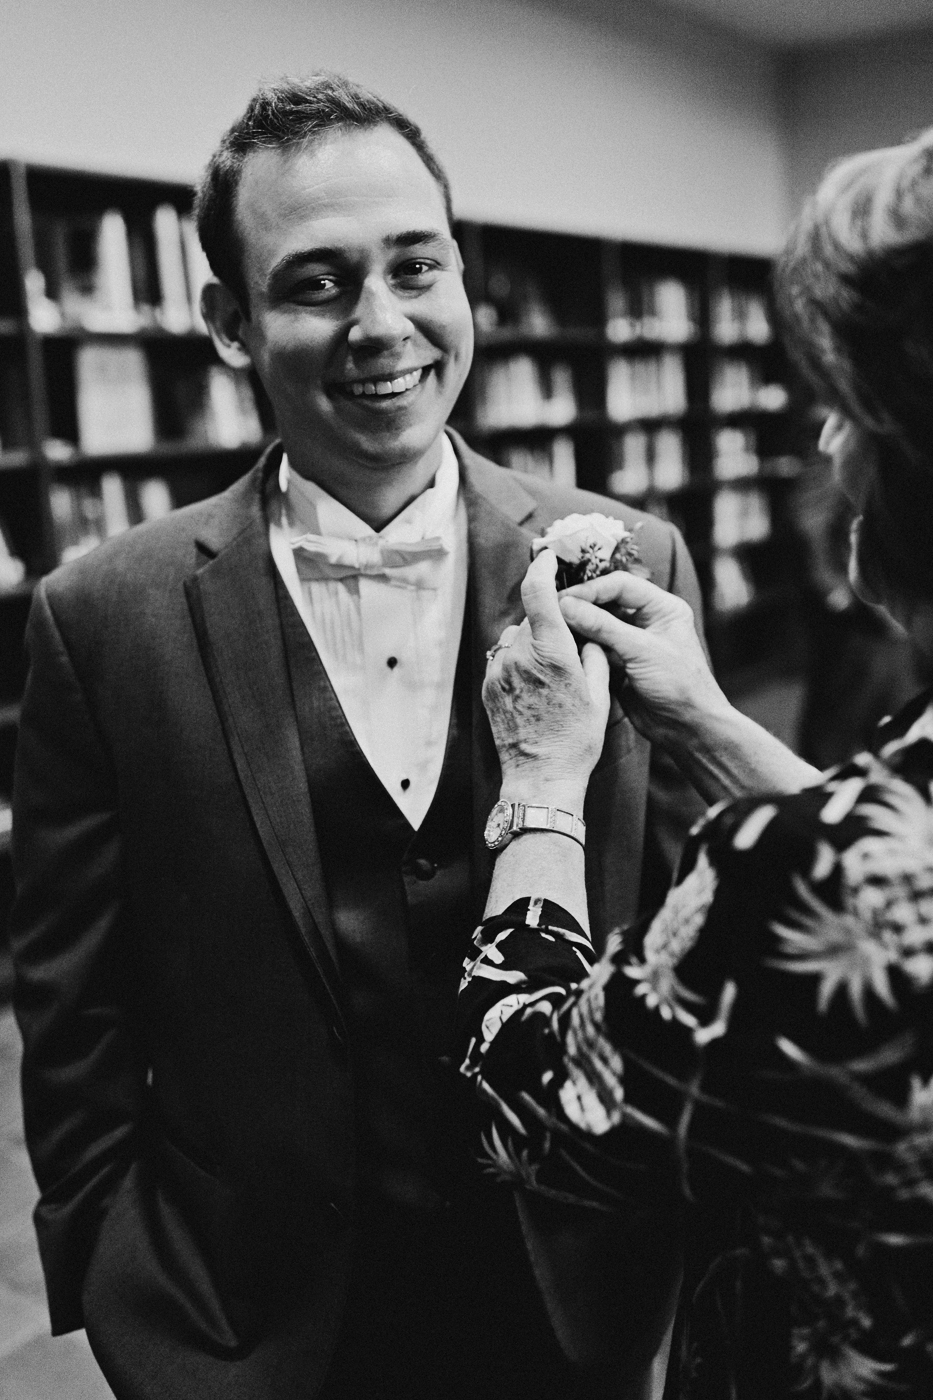 Groom gets boutonniere pinned on